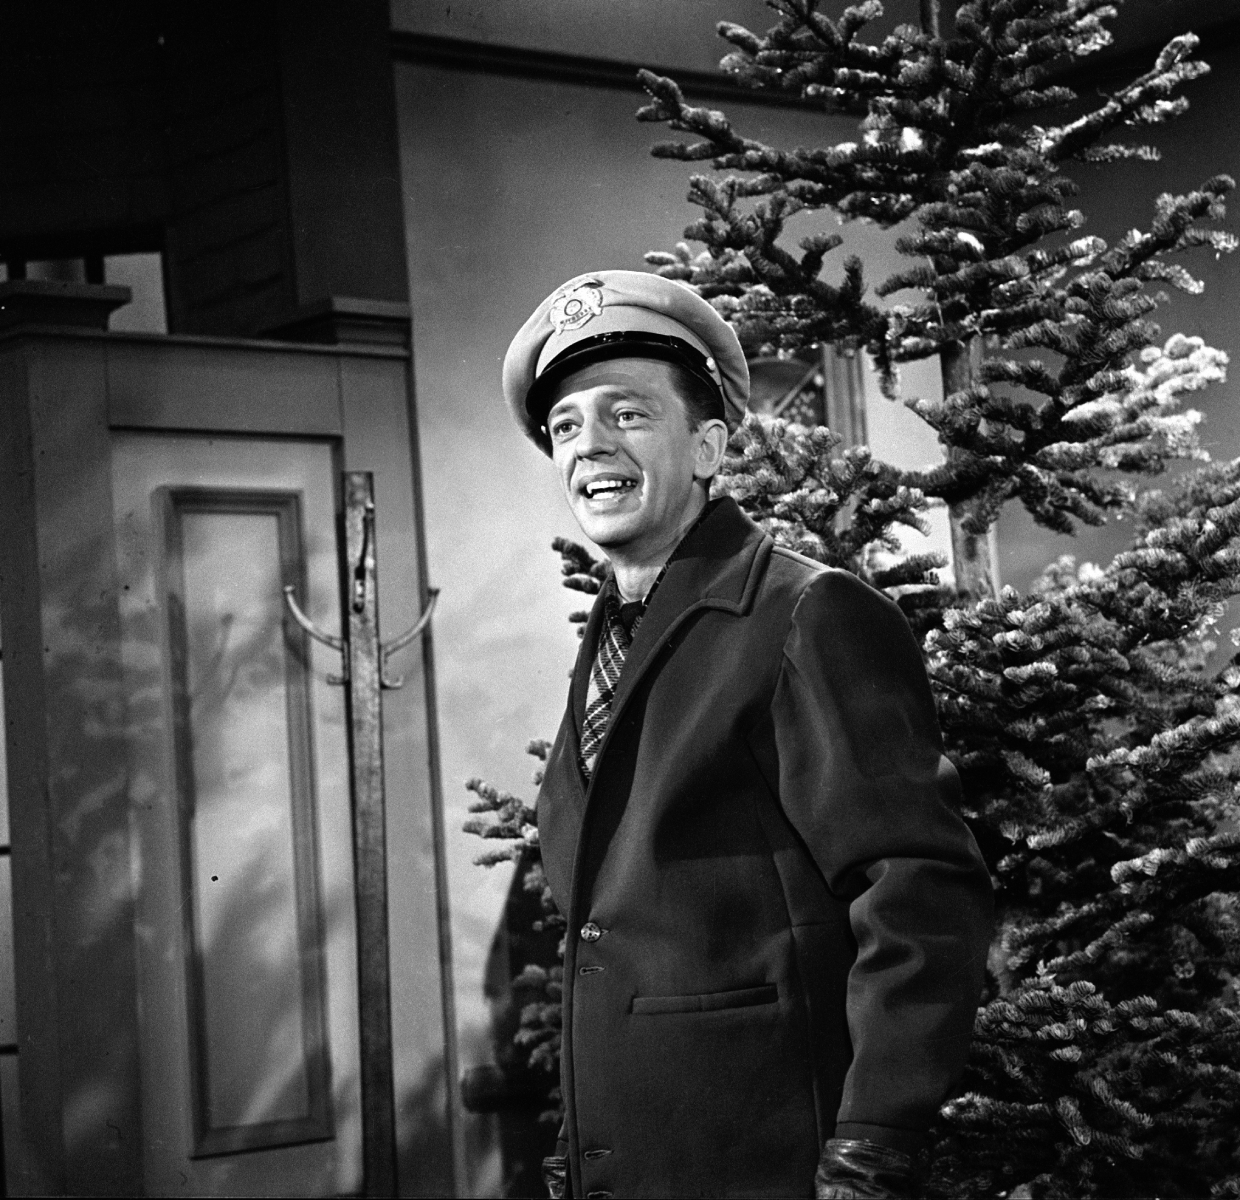 Actor Don Knotts is dressed in his Deputy Sheriff Barney Fife uniform on the set of 'The Andy Griffith Show.'